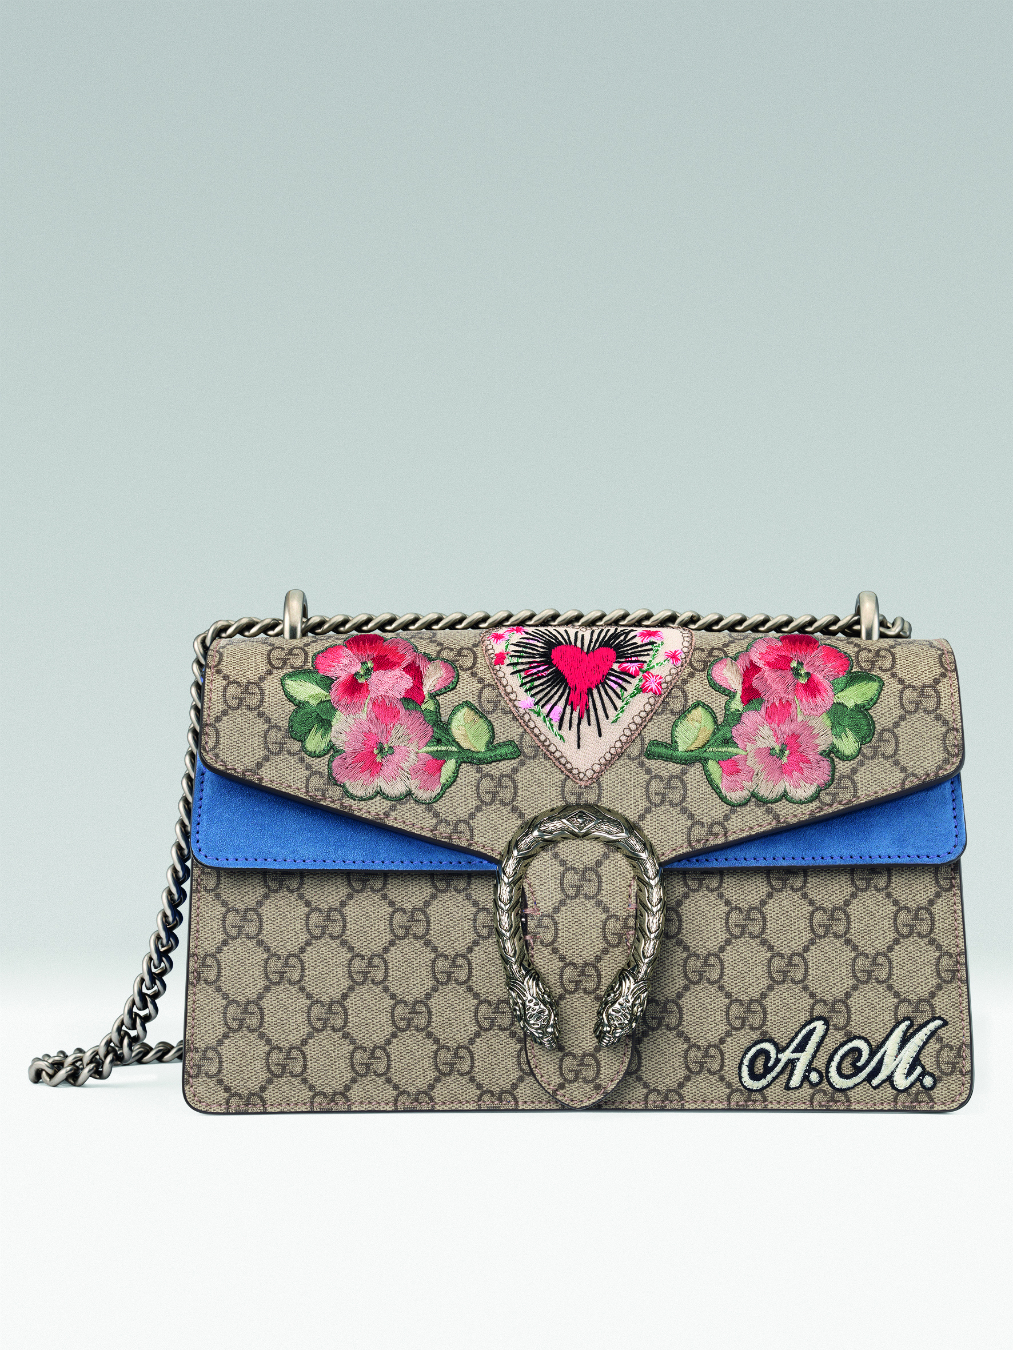 153c4425d19 Gucci DIY Project